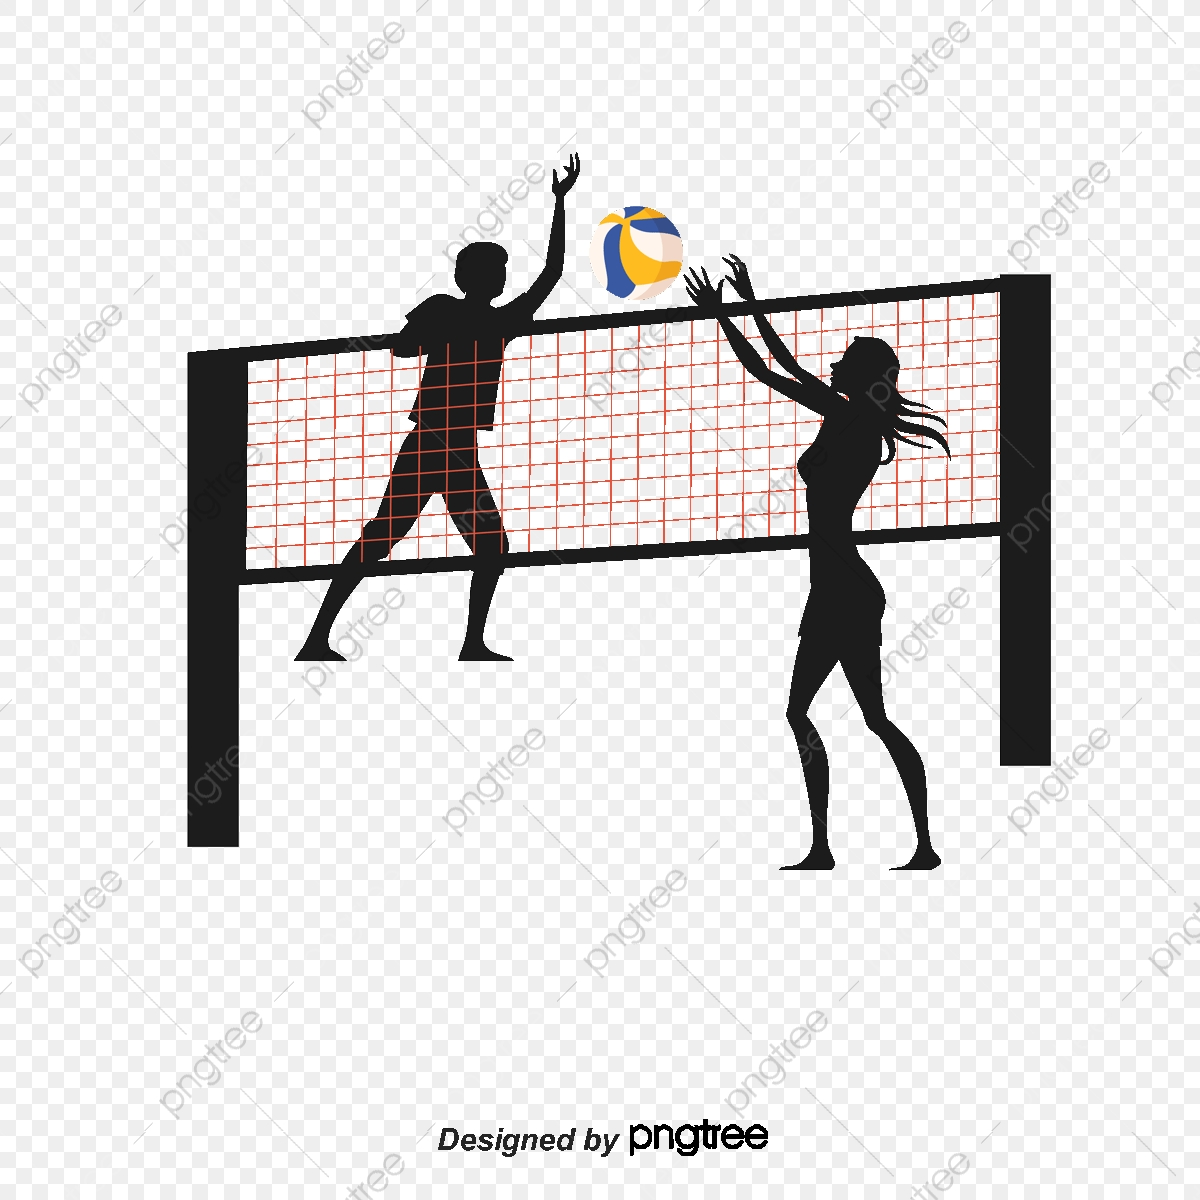 Clipart volleyball server. Smash and block the